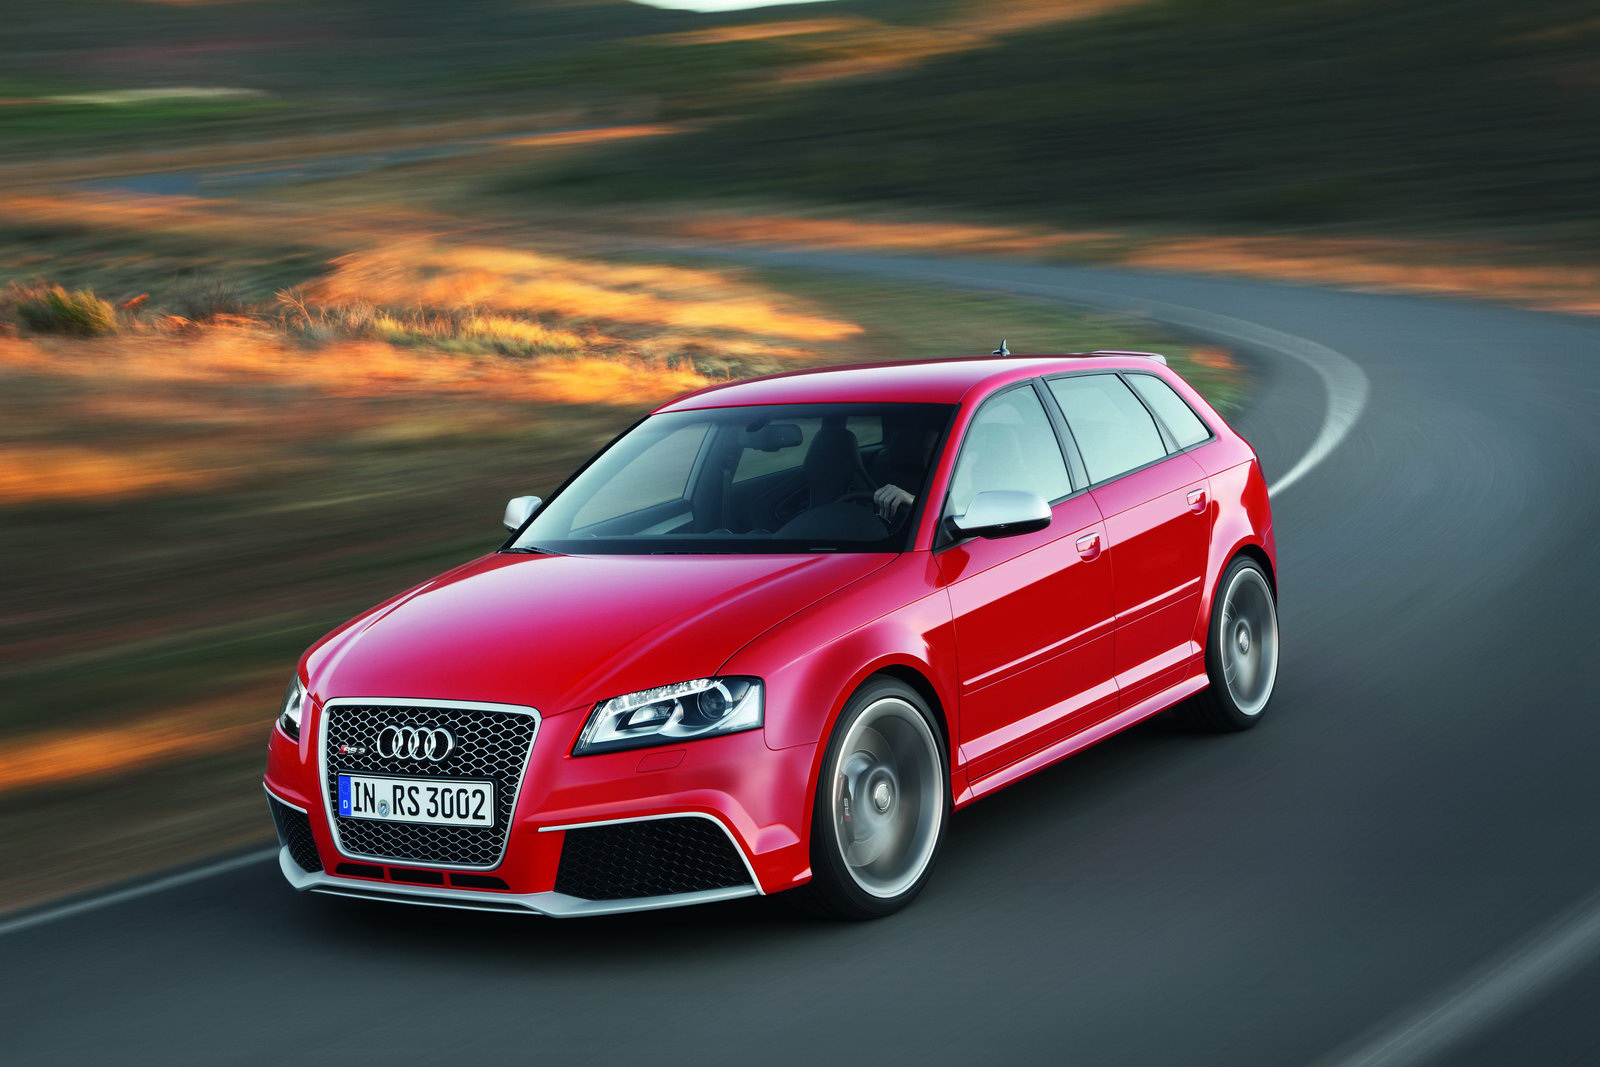 Subaru 2.5 Rs >> All New Audi RS3 Sportback - ForceGT.com